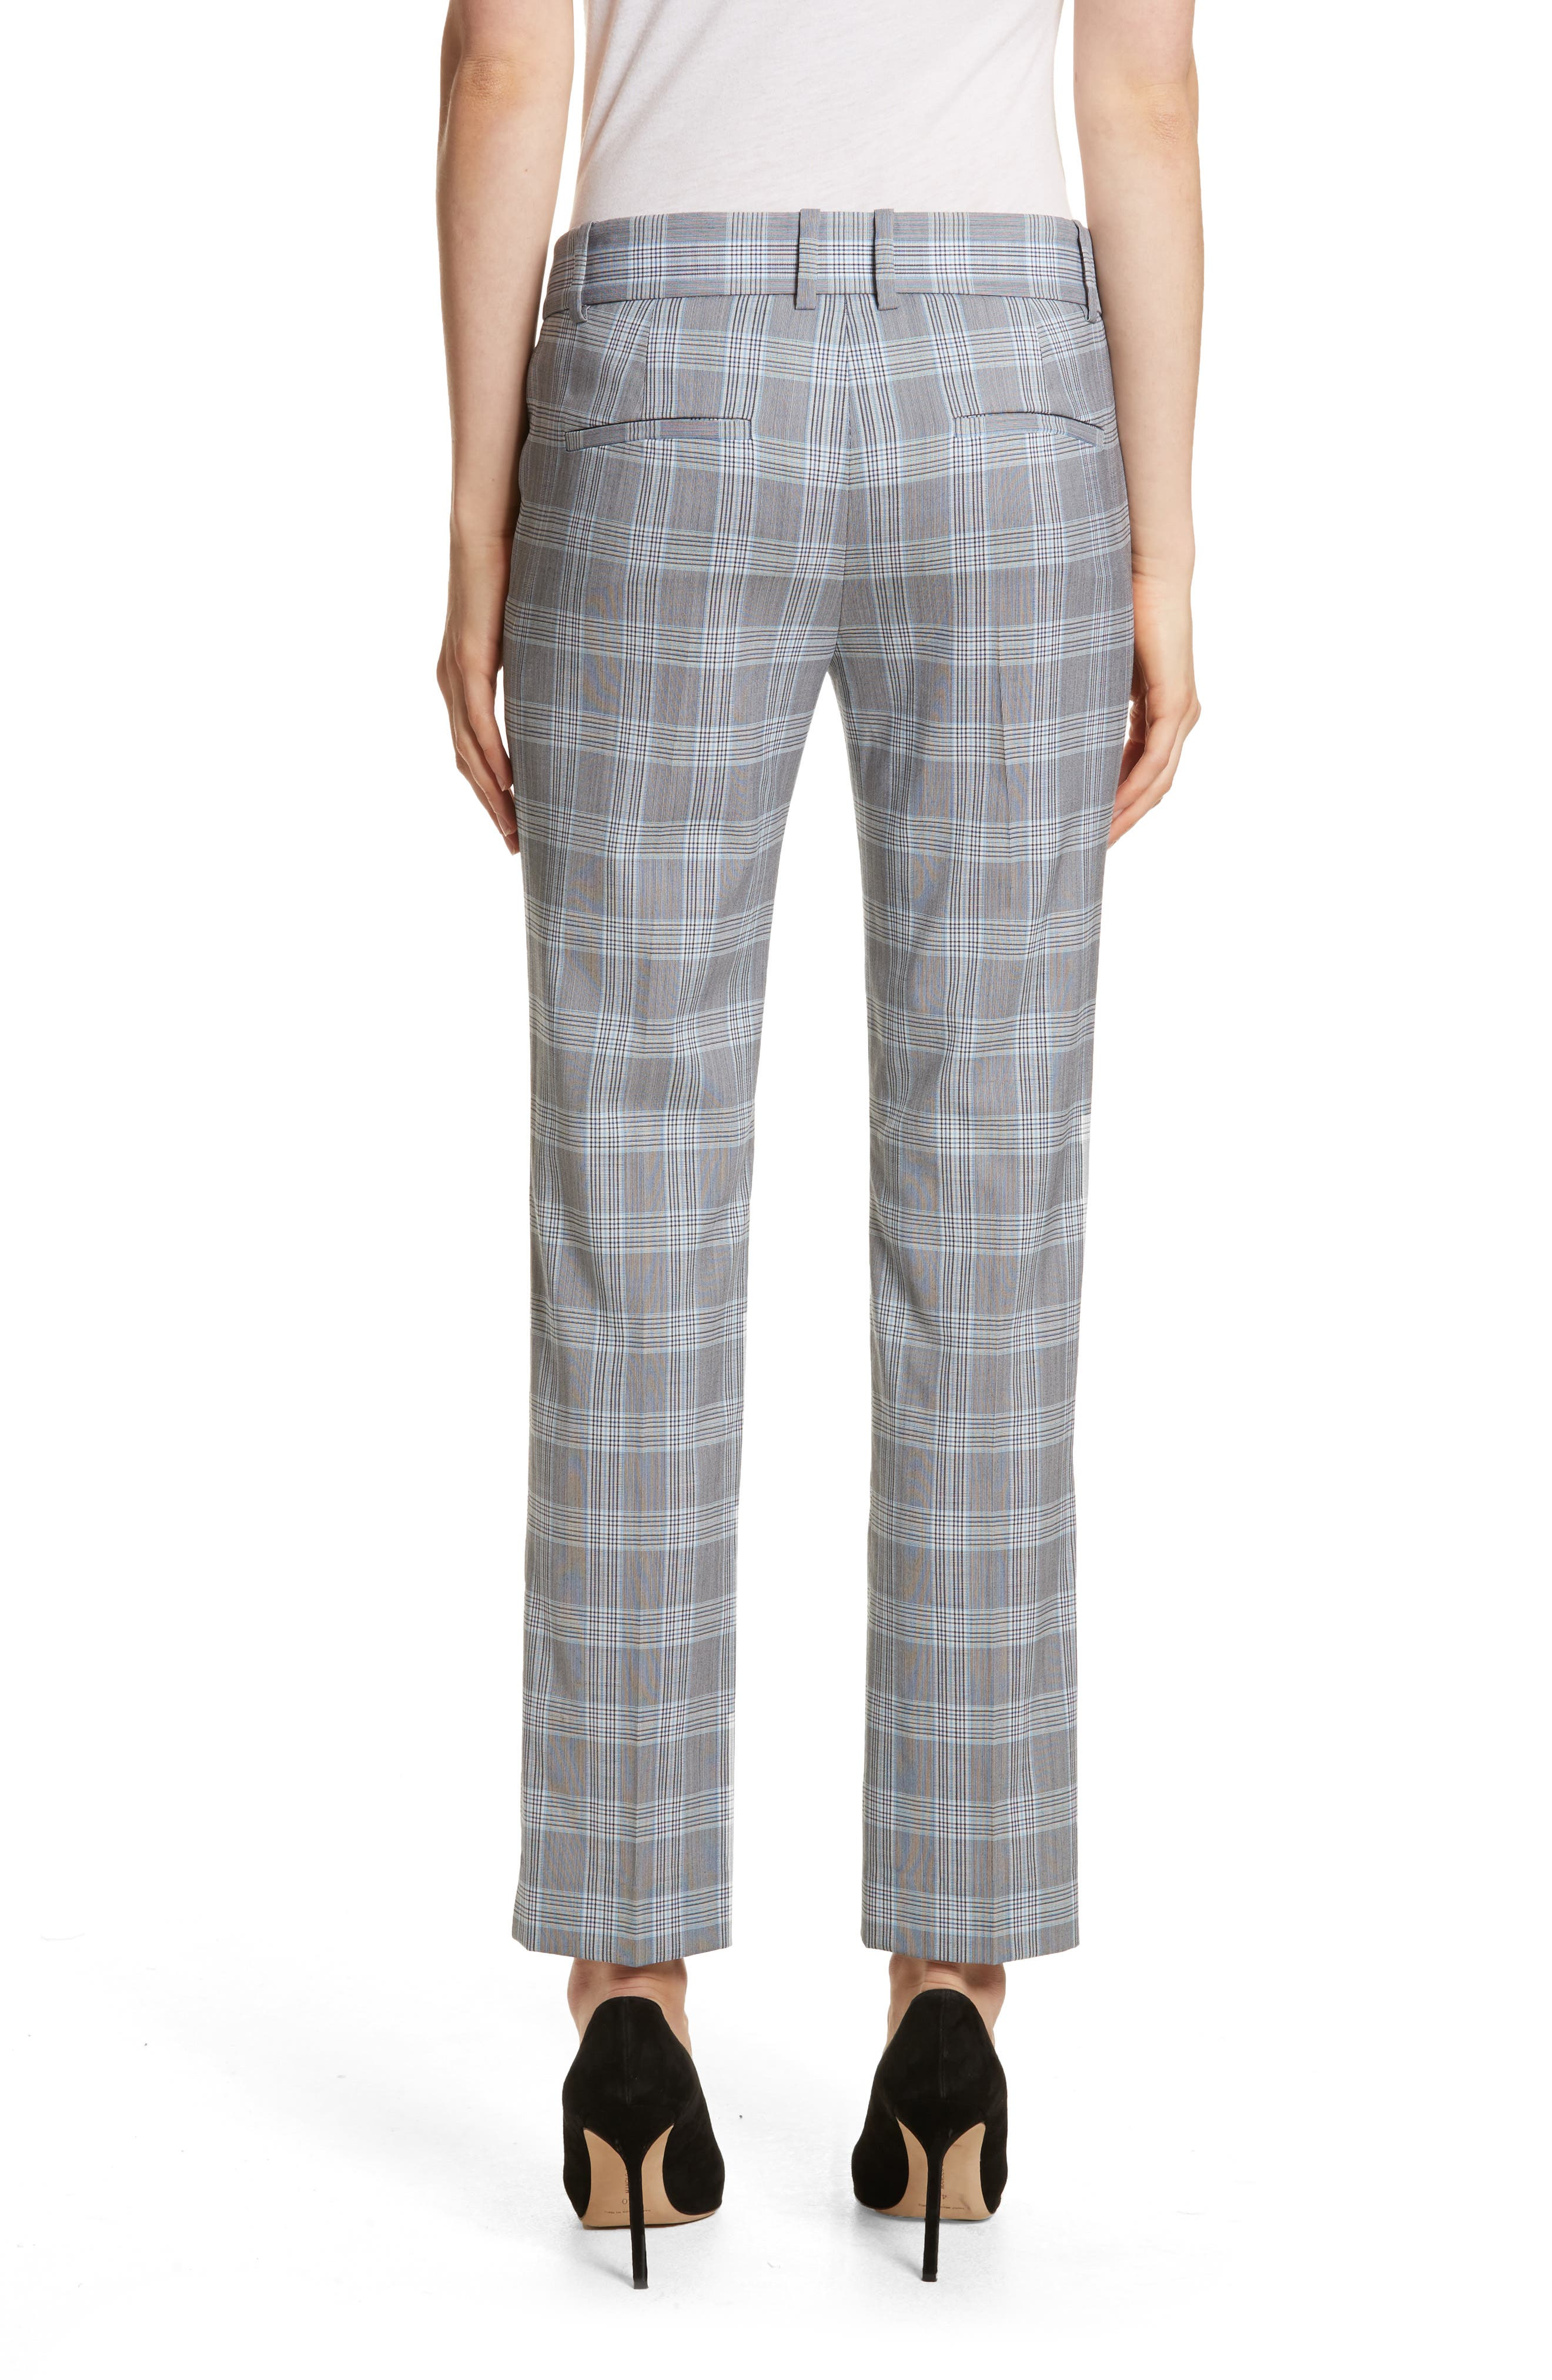 Maple Check 2 Straight Crop Trousers,                             Alternate thumbnail 2, color,                             White